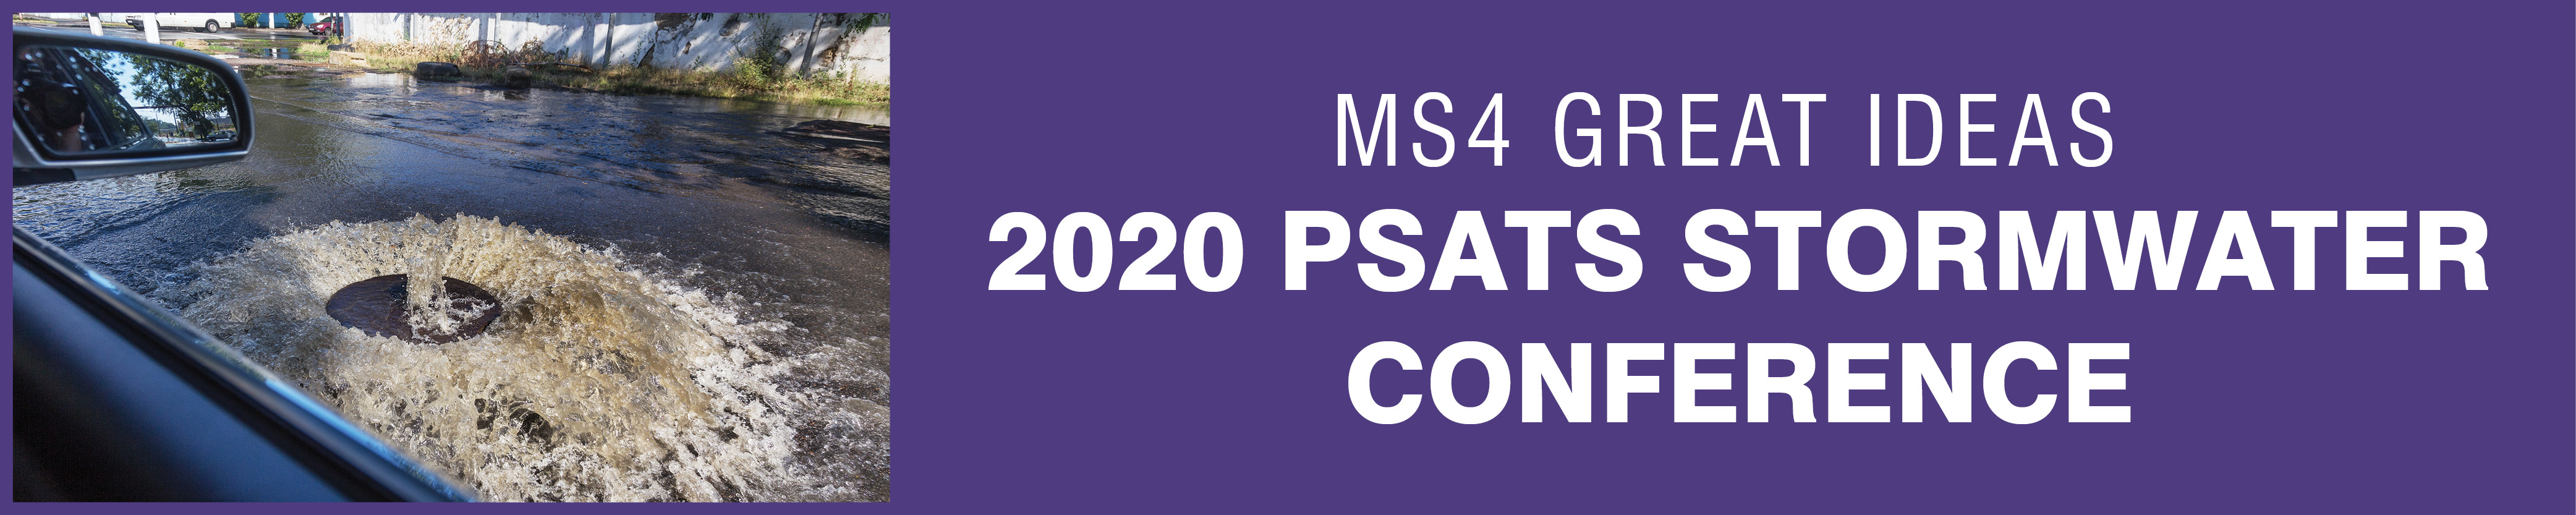 2020 PSATS Stormwater Conference - Central